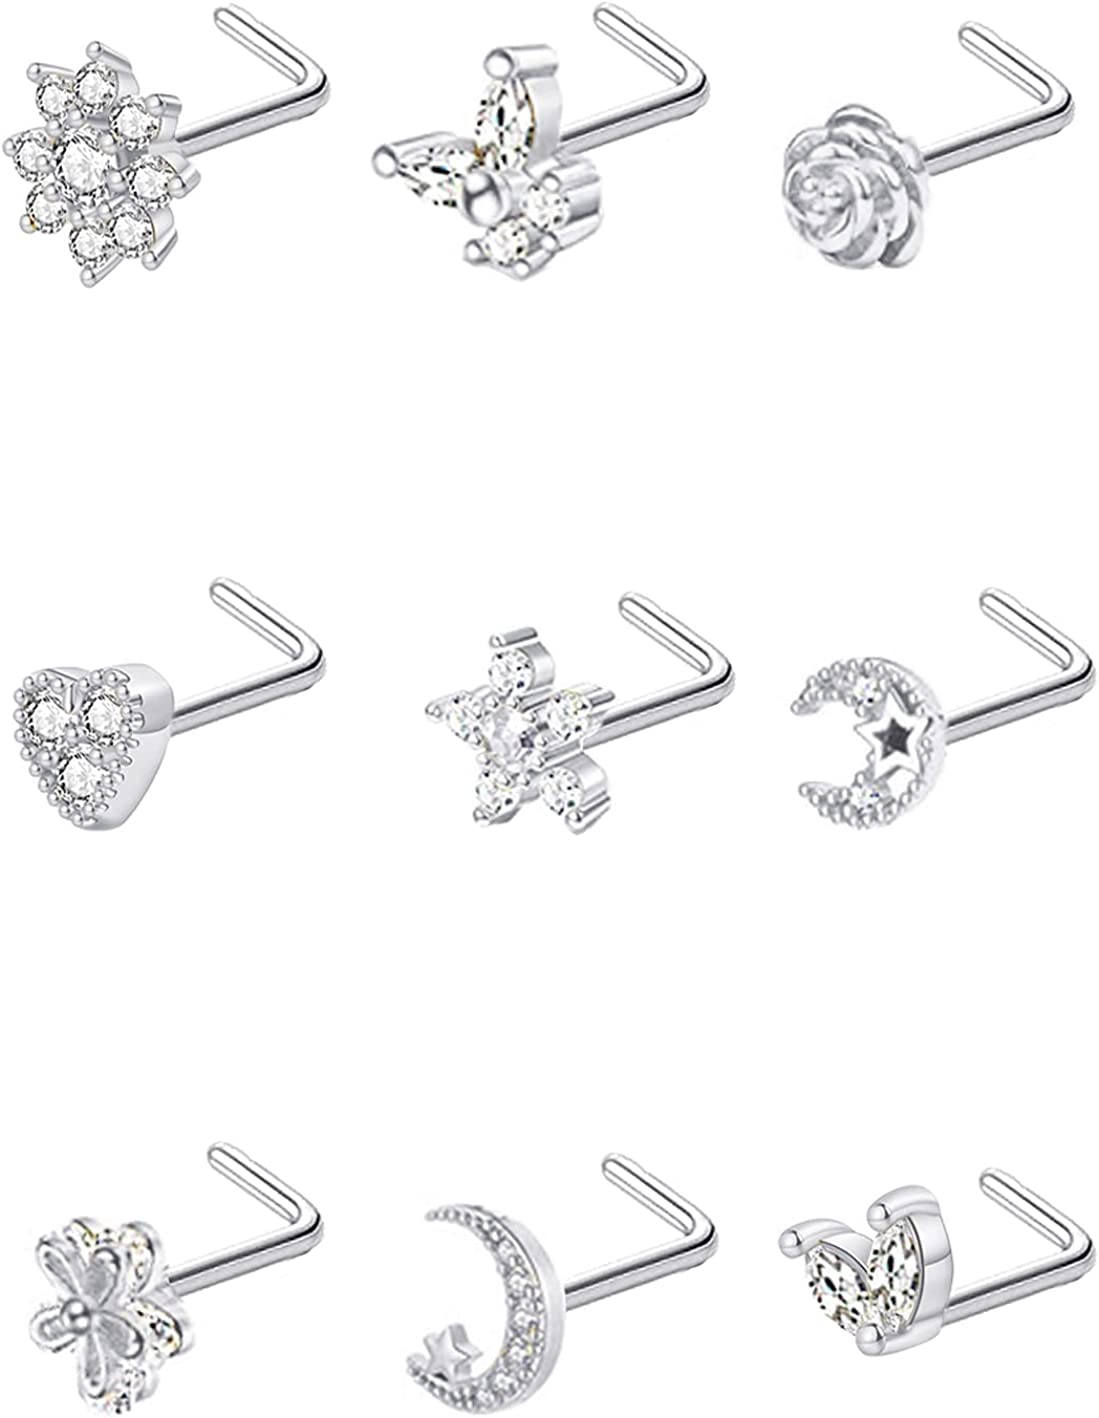 Masedy 9Pcs 20G Stainless Steel Nose Rings Shaped F Studs Clearance SALE! Limited time! Ranking TOP13 L